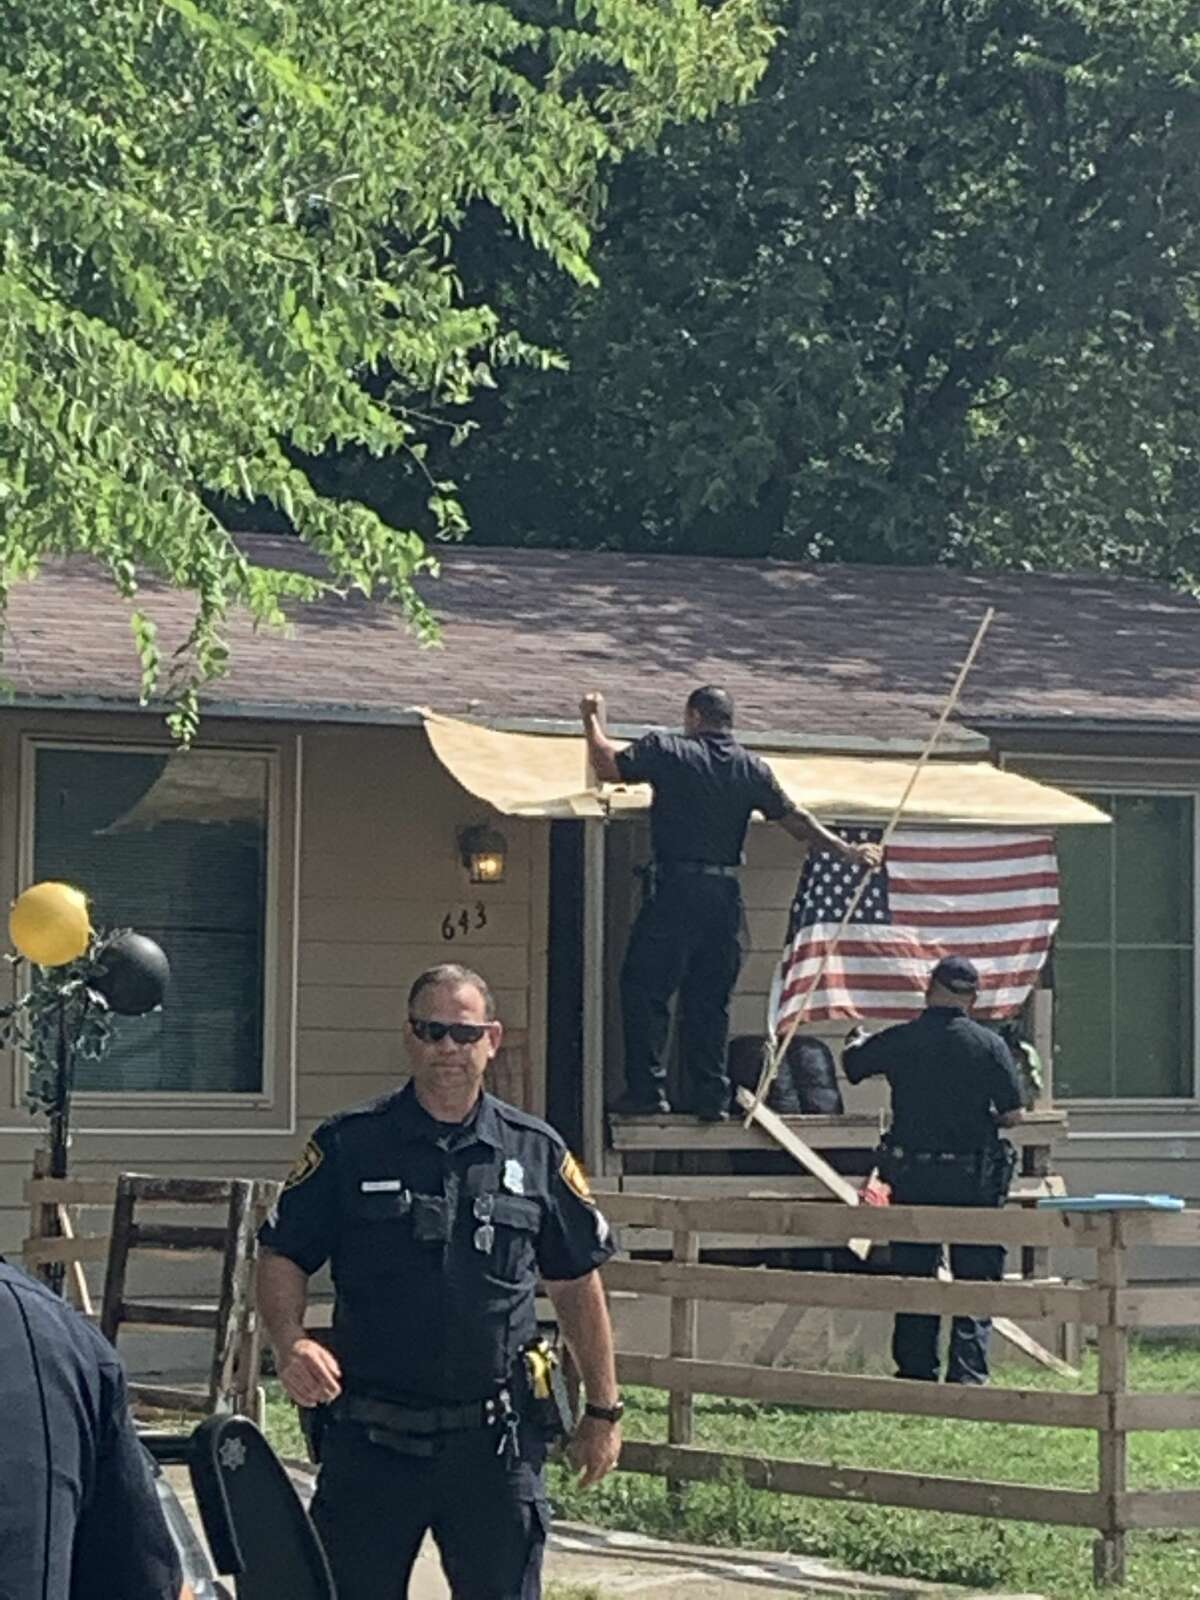 A mother and her son were stabbed after the woman was involved in a verbal altercation with her ex who showed up at her East Side residence, San Antonio police spokeswoman Alisia Pruneda said.